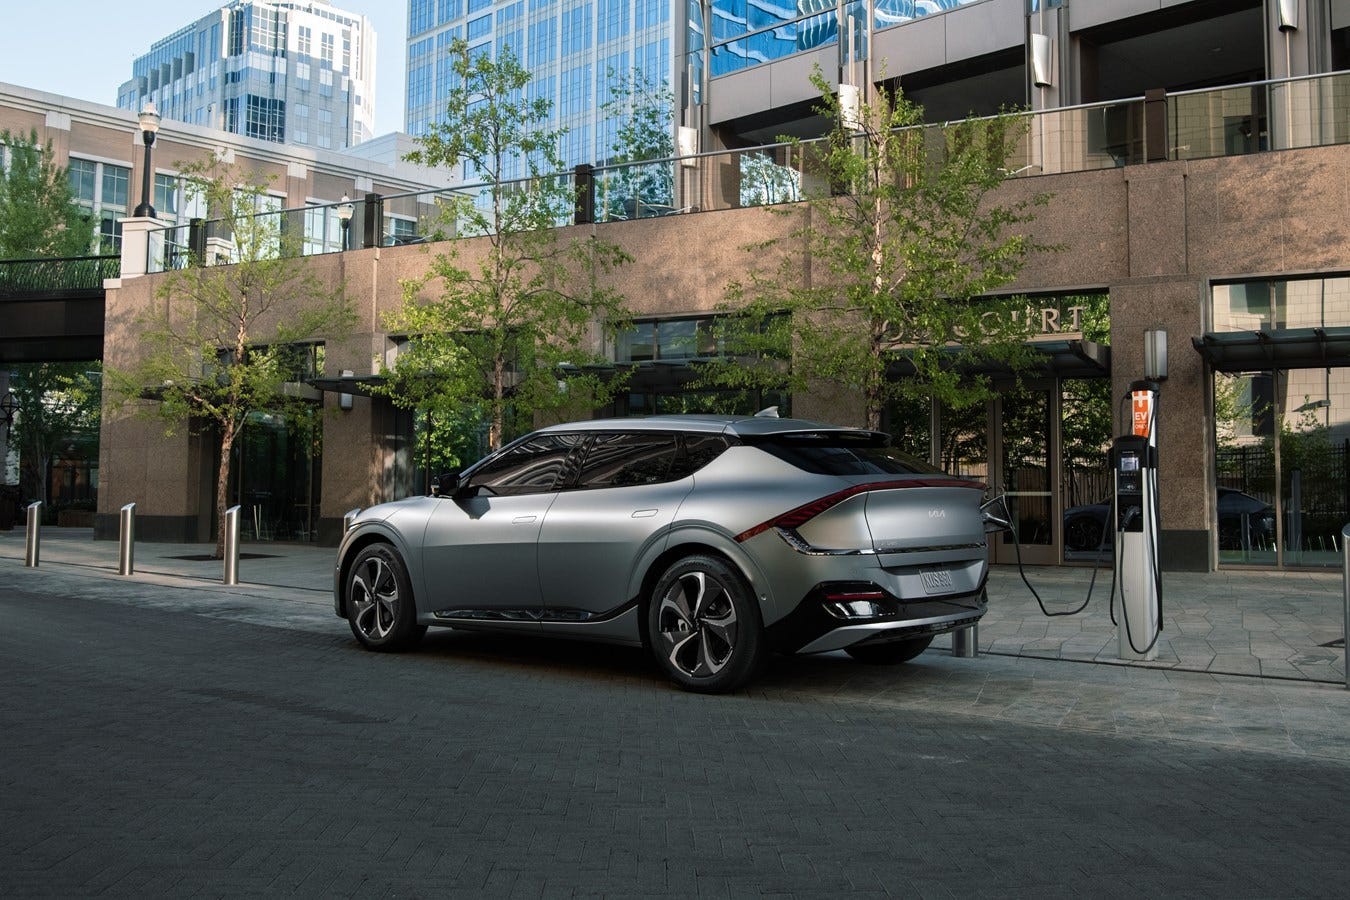 Kia reveals EV6 electric crossover vehicle with augmented reality windshield, remote parking